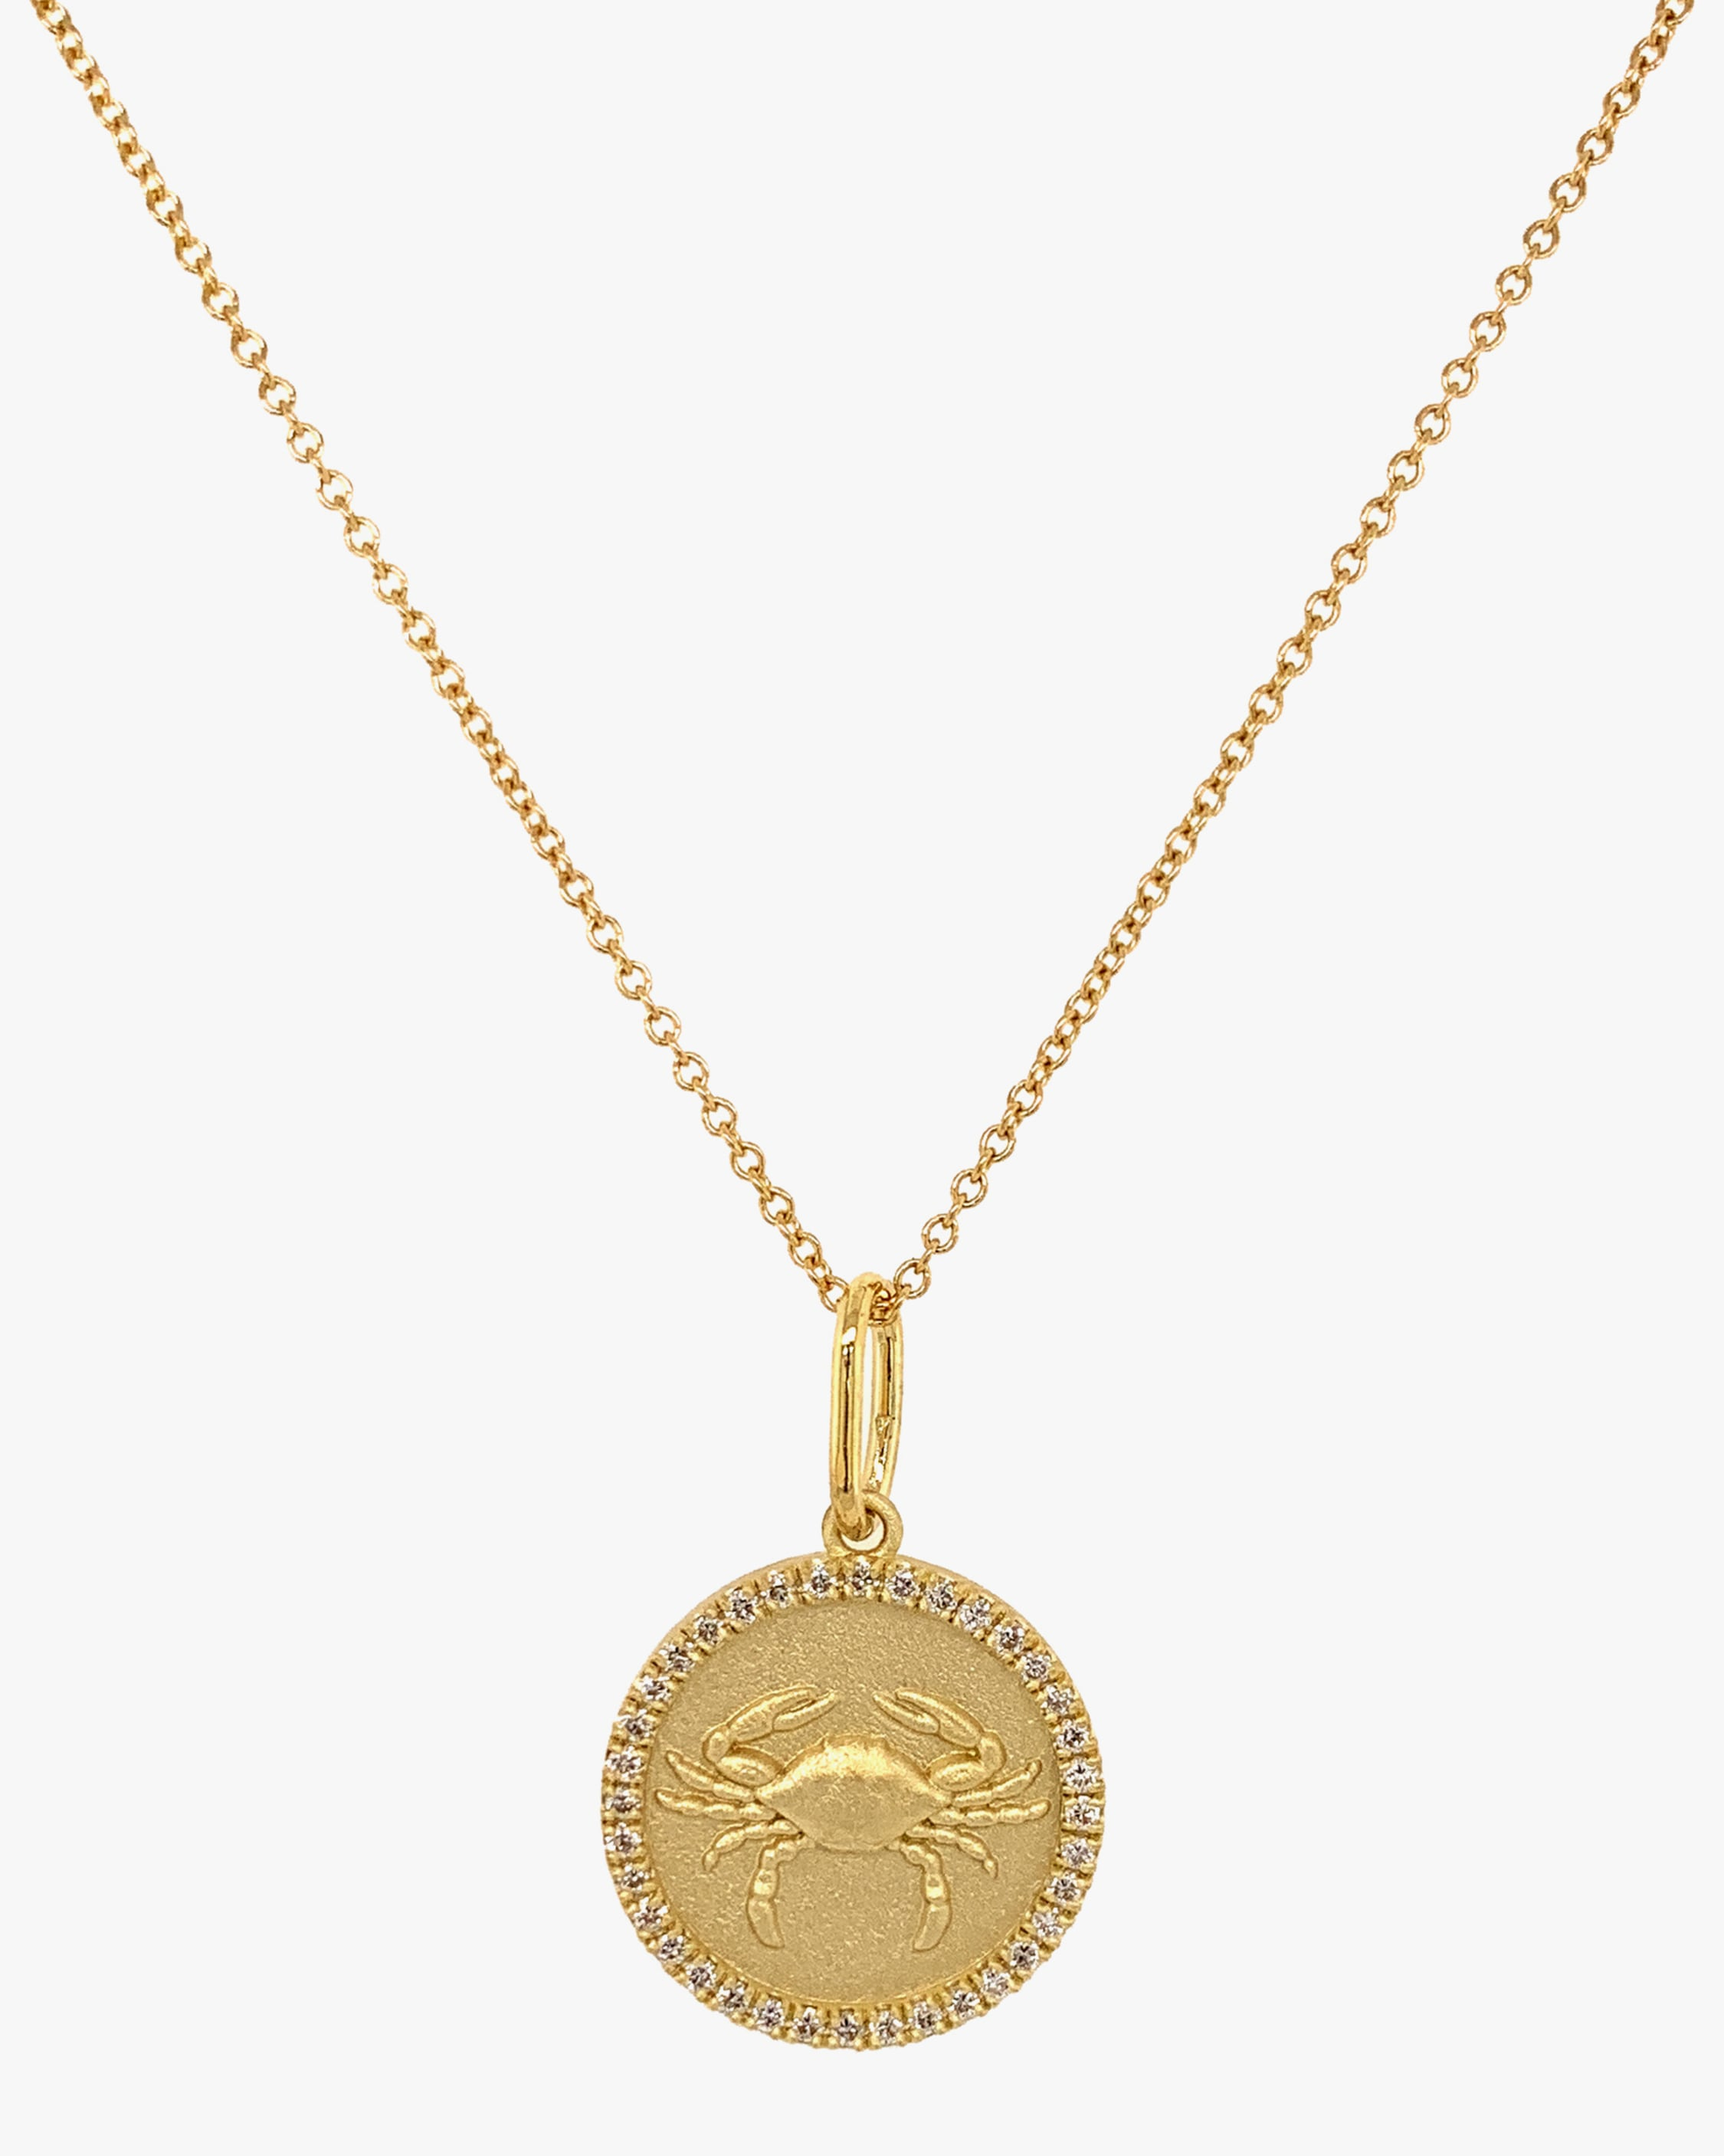 Colette Jewelry Cancer Pendant Necklace 1